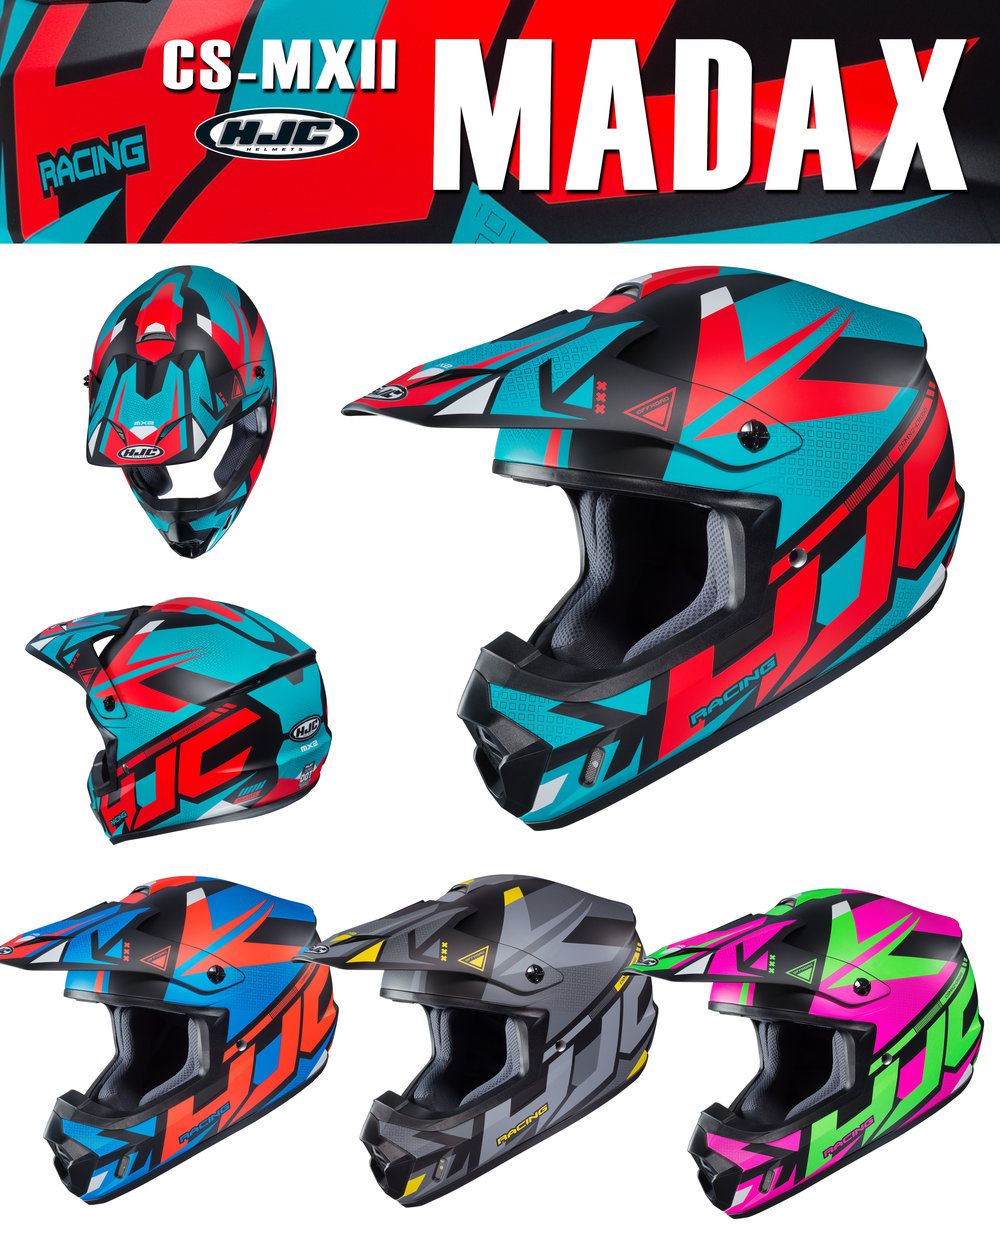 CSMXII Madax Helmet Post.jpg